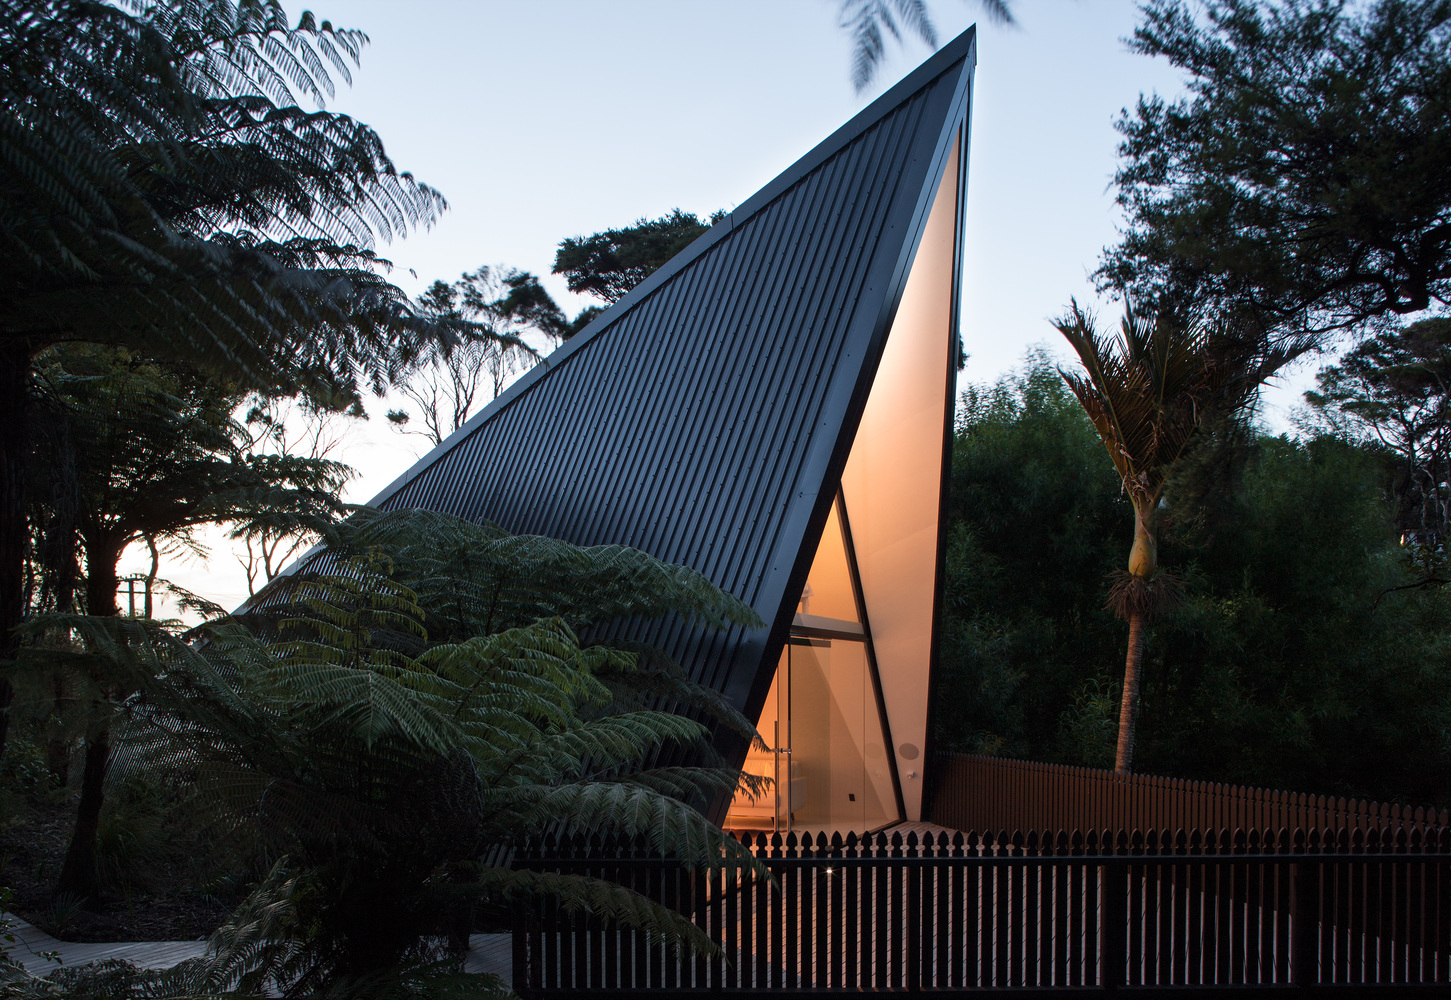 Tent House Challenges the Expectations of What a Weekend House Can Be